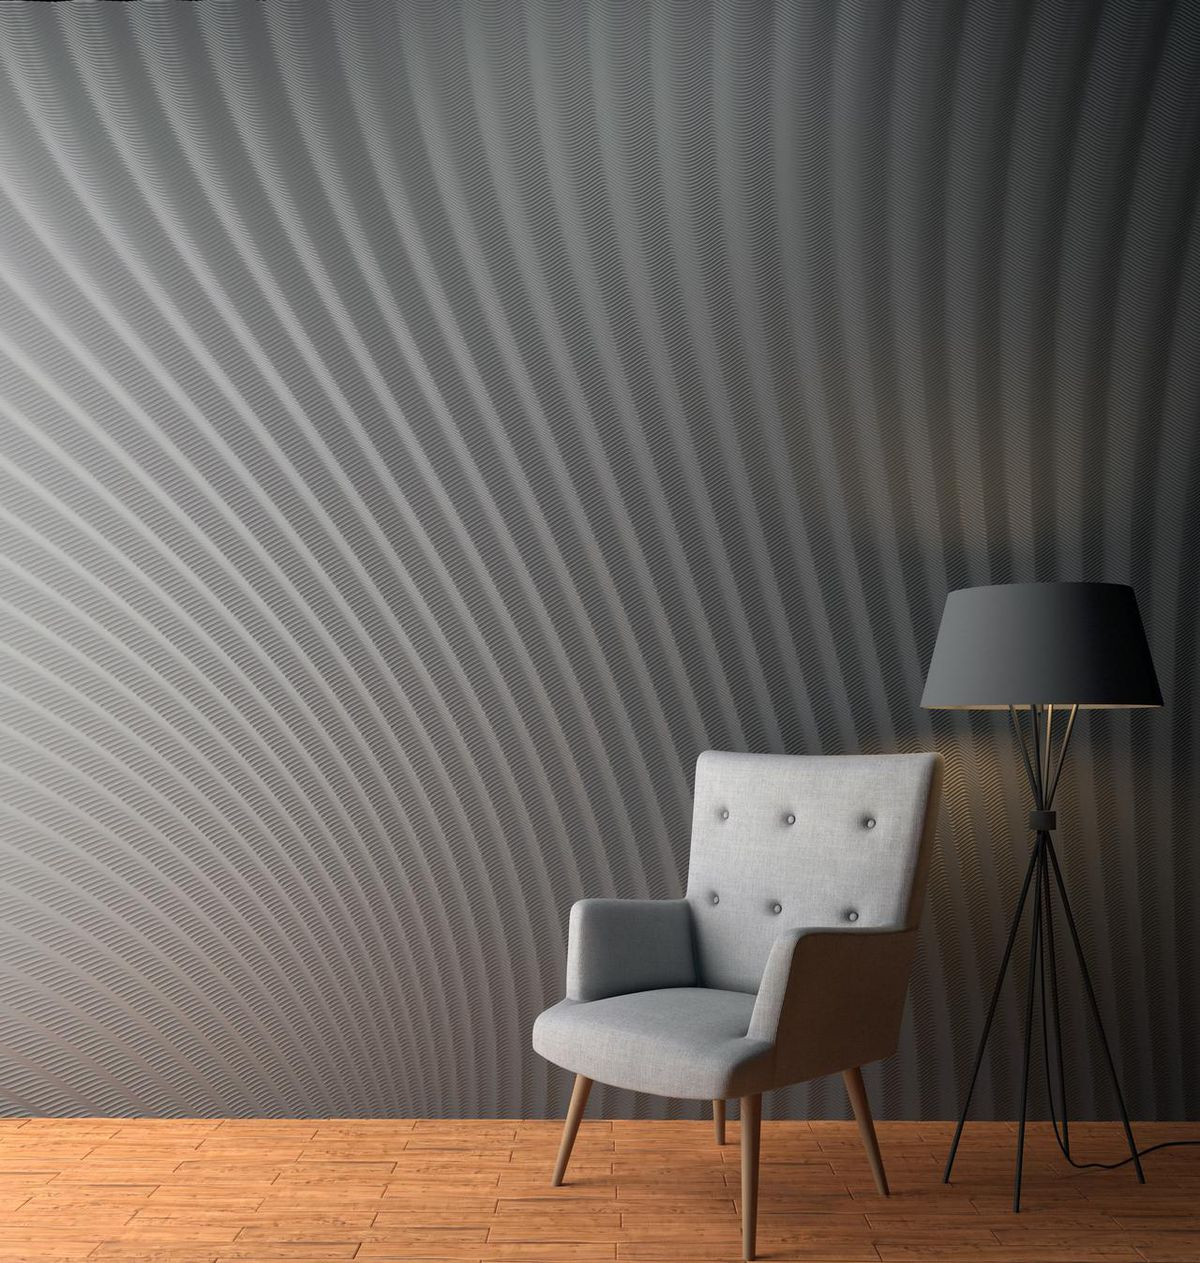 Chair and lamp in front of optical illusion wall